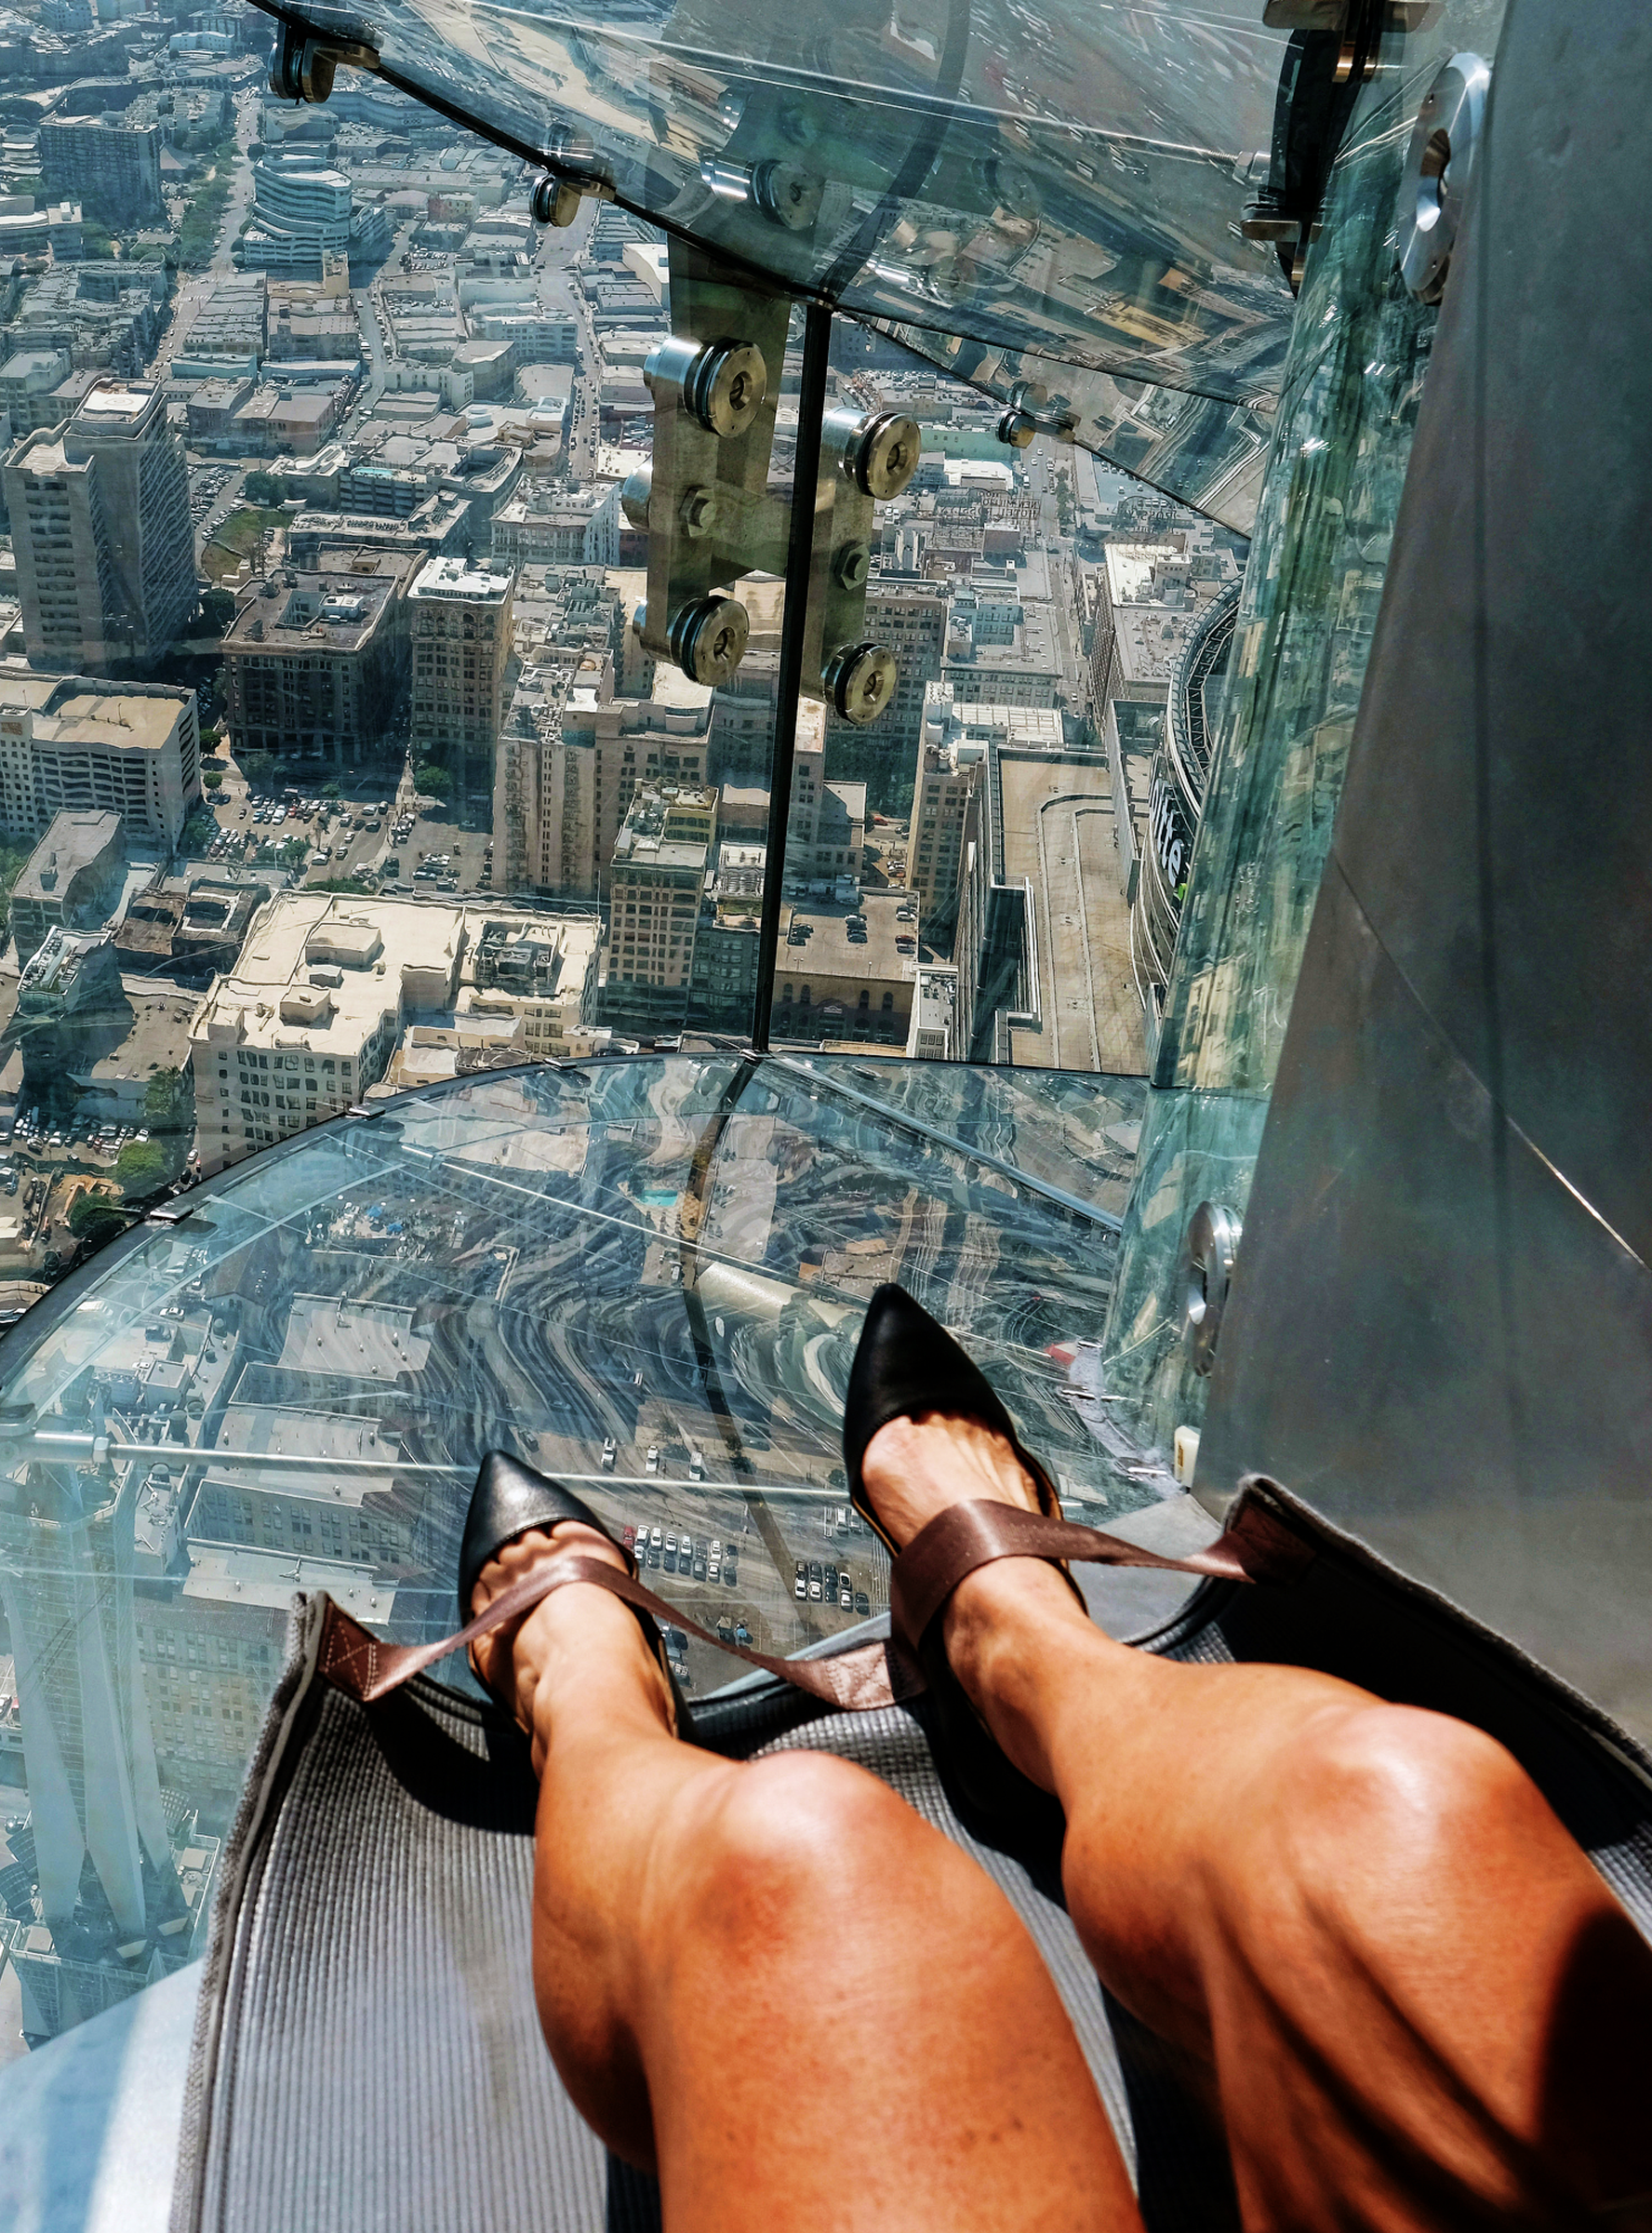 GoAltaCA   Are You Brave Enough To Go Down A Glass Slide On Top Of An L.A. Skyscraper? #refinery29